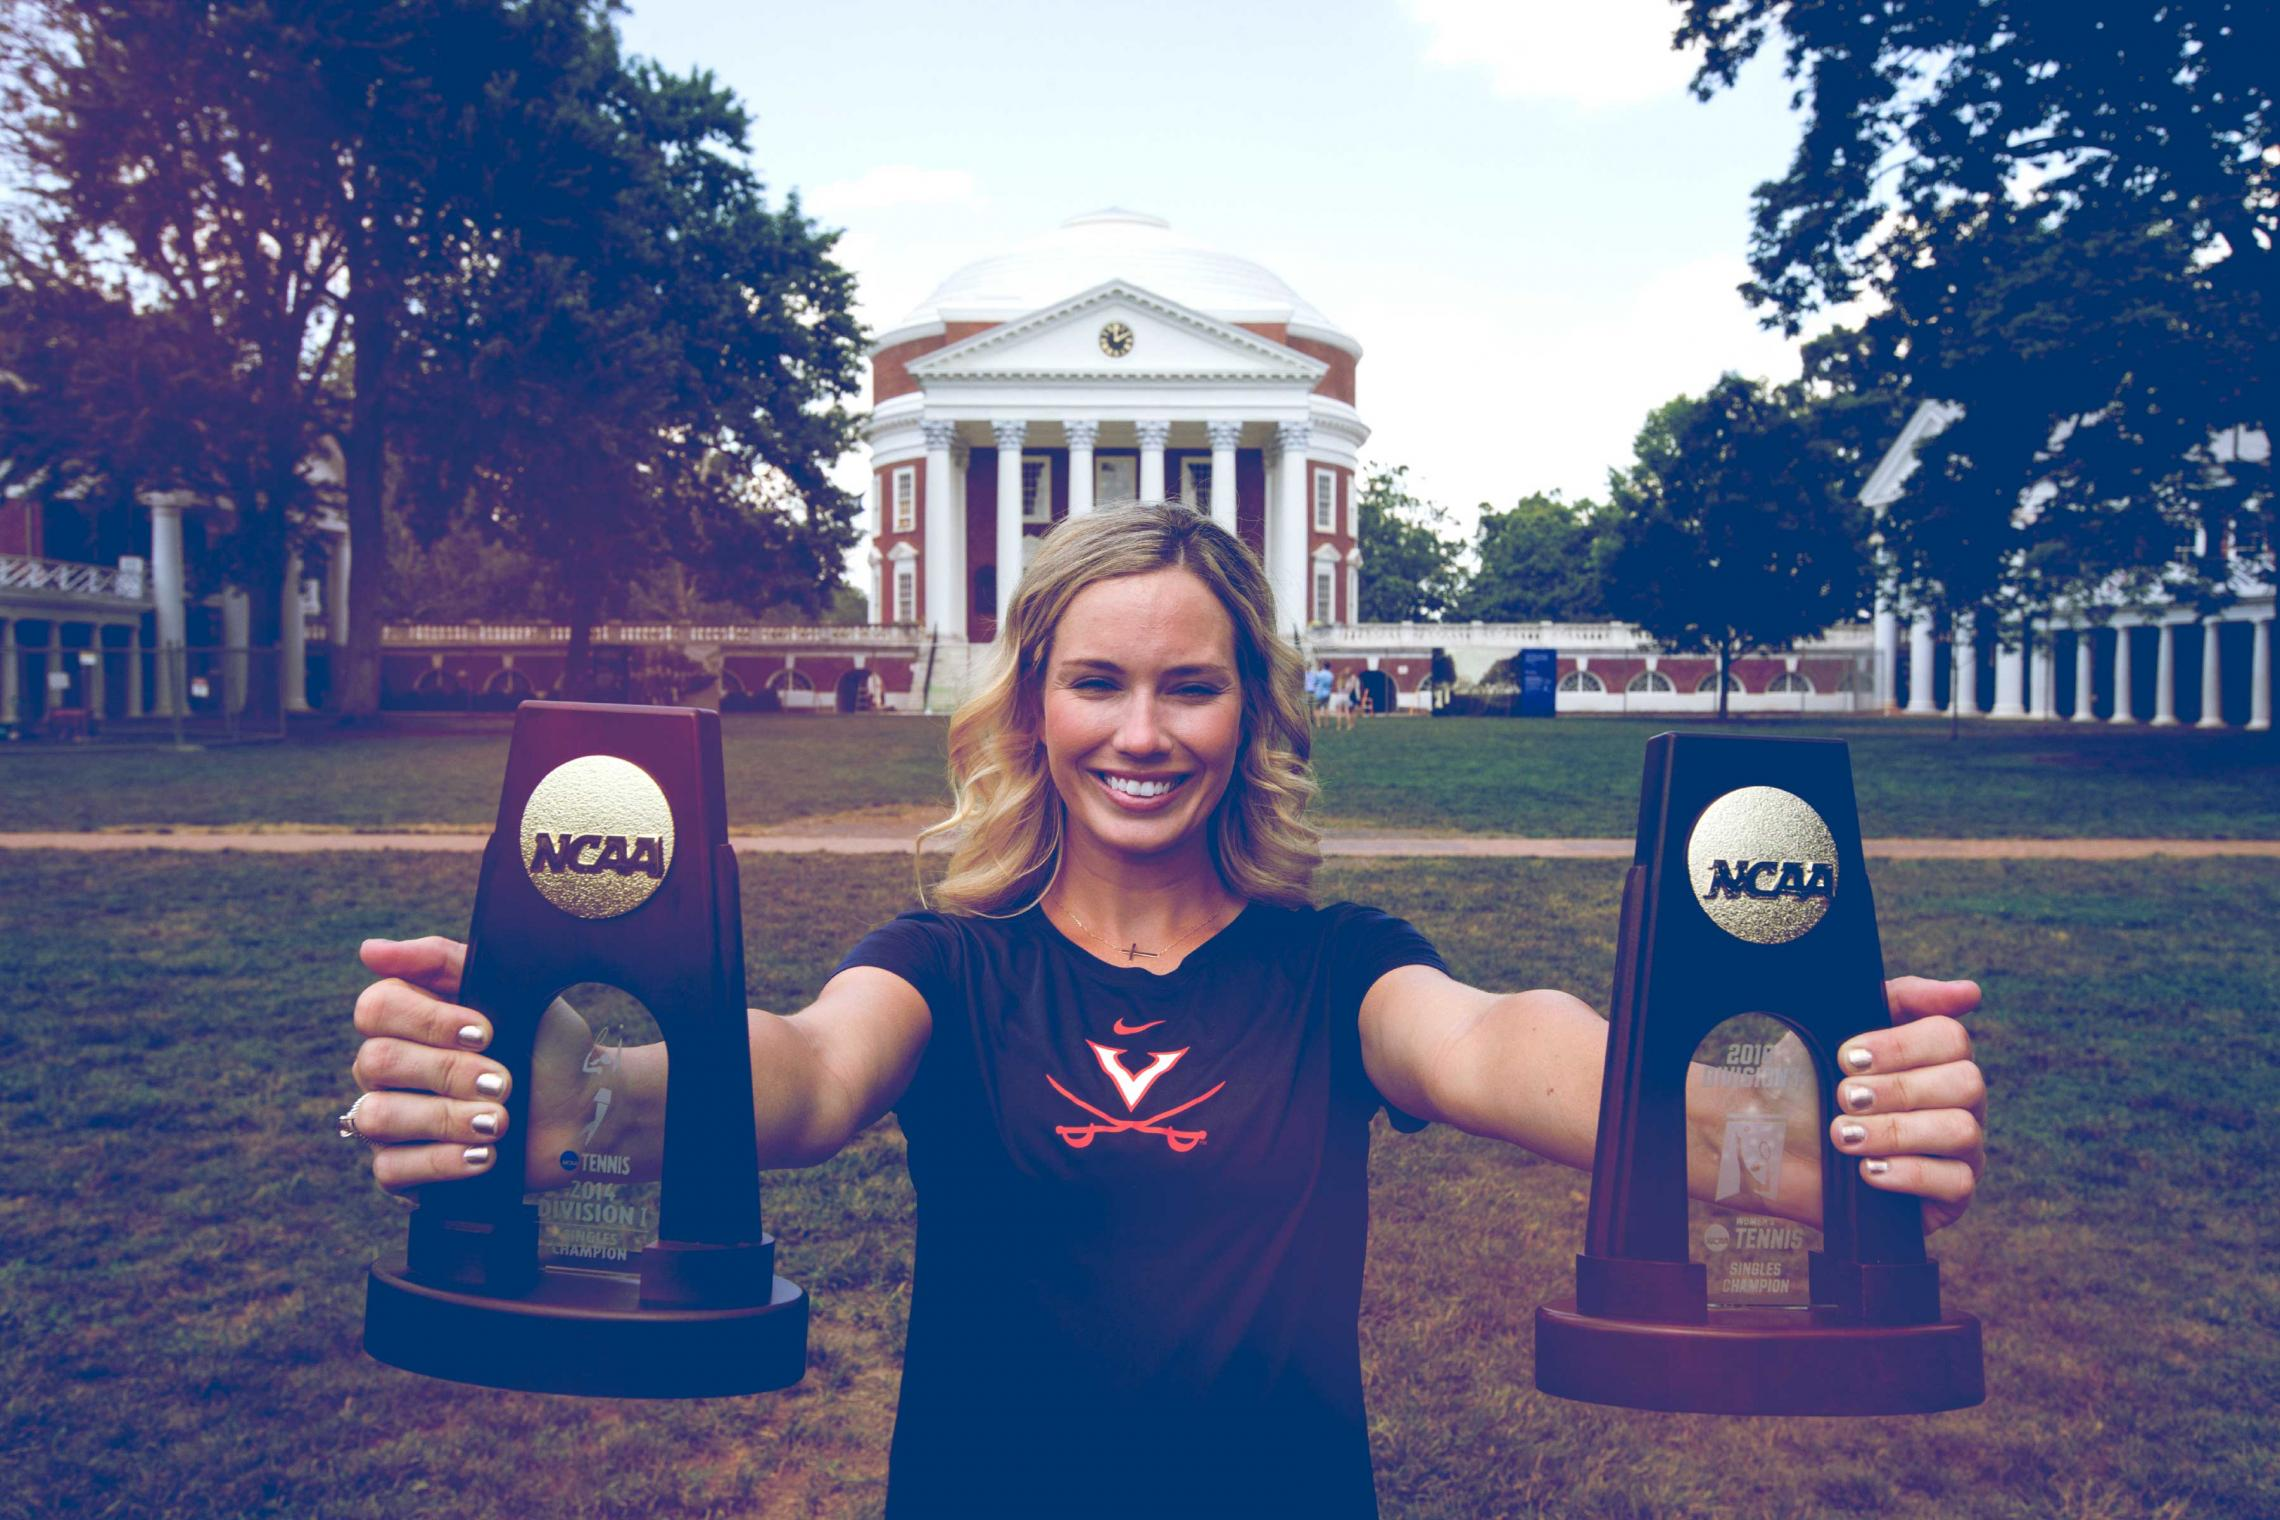 Danielle Collins won 125 of 153 singles matches during her college career and two national championships.